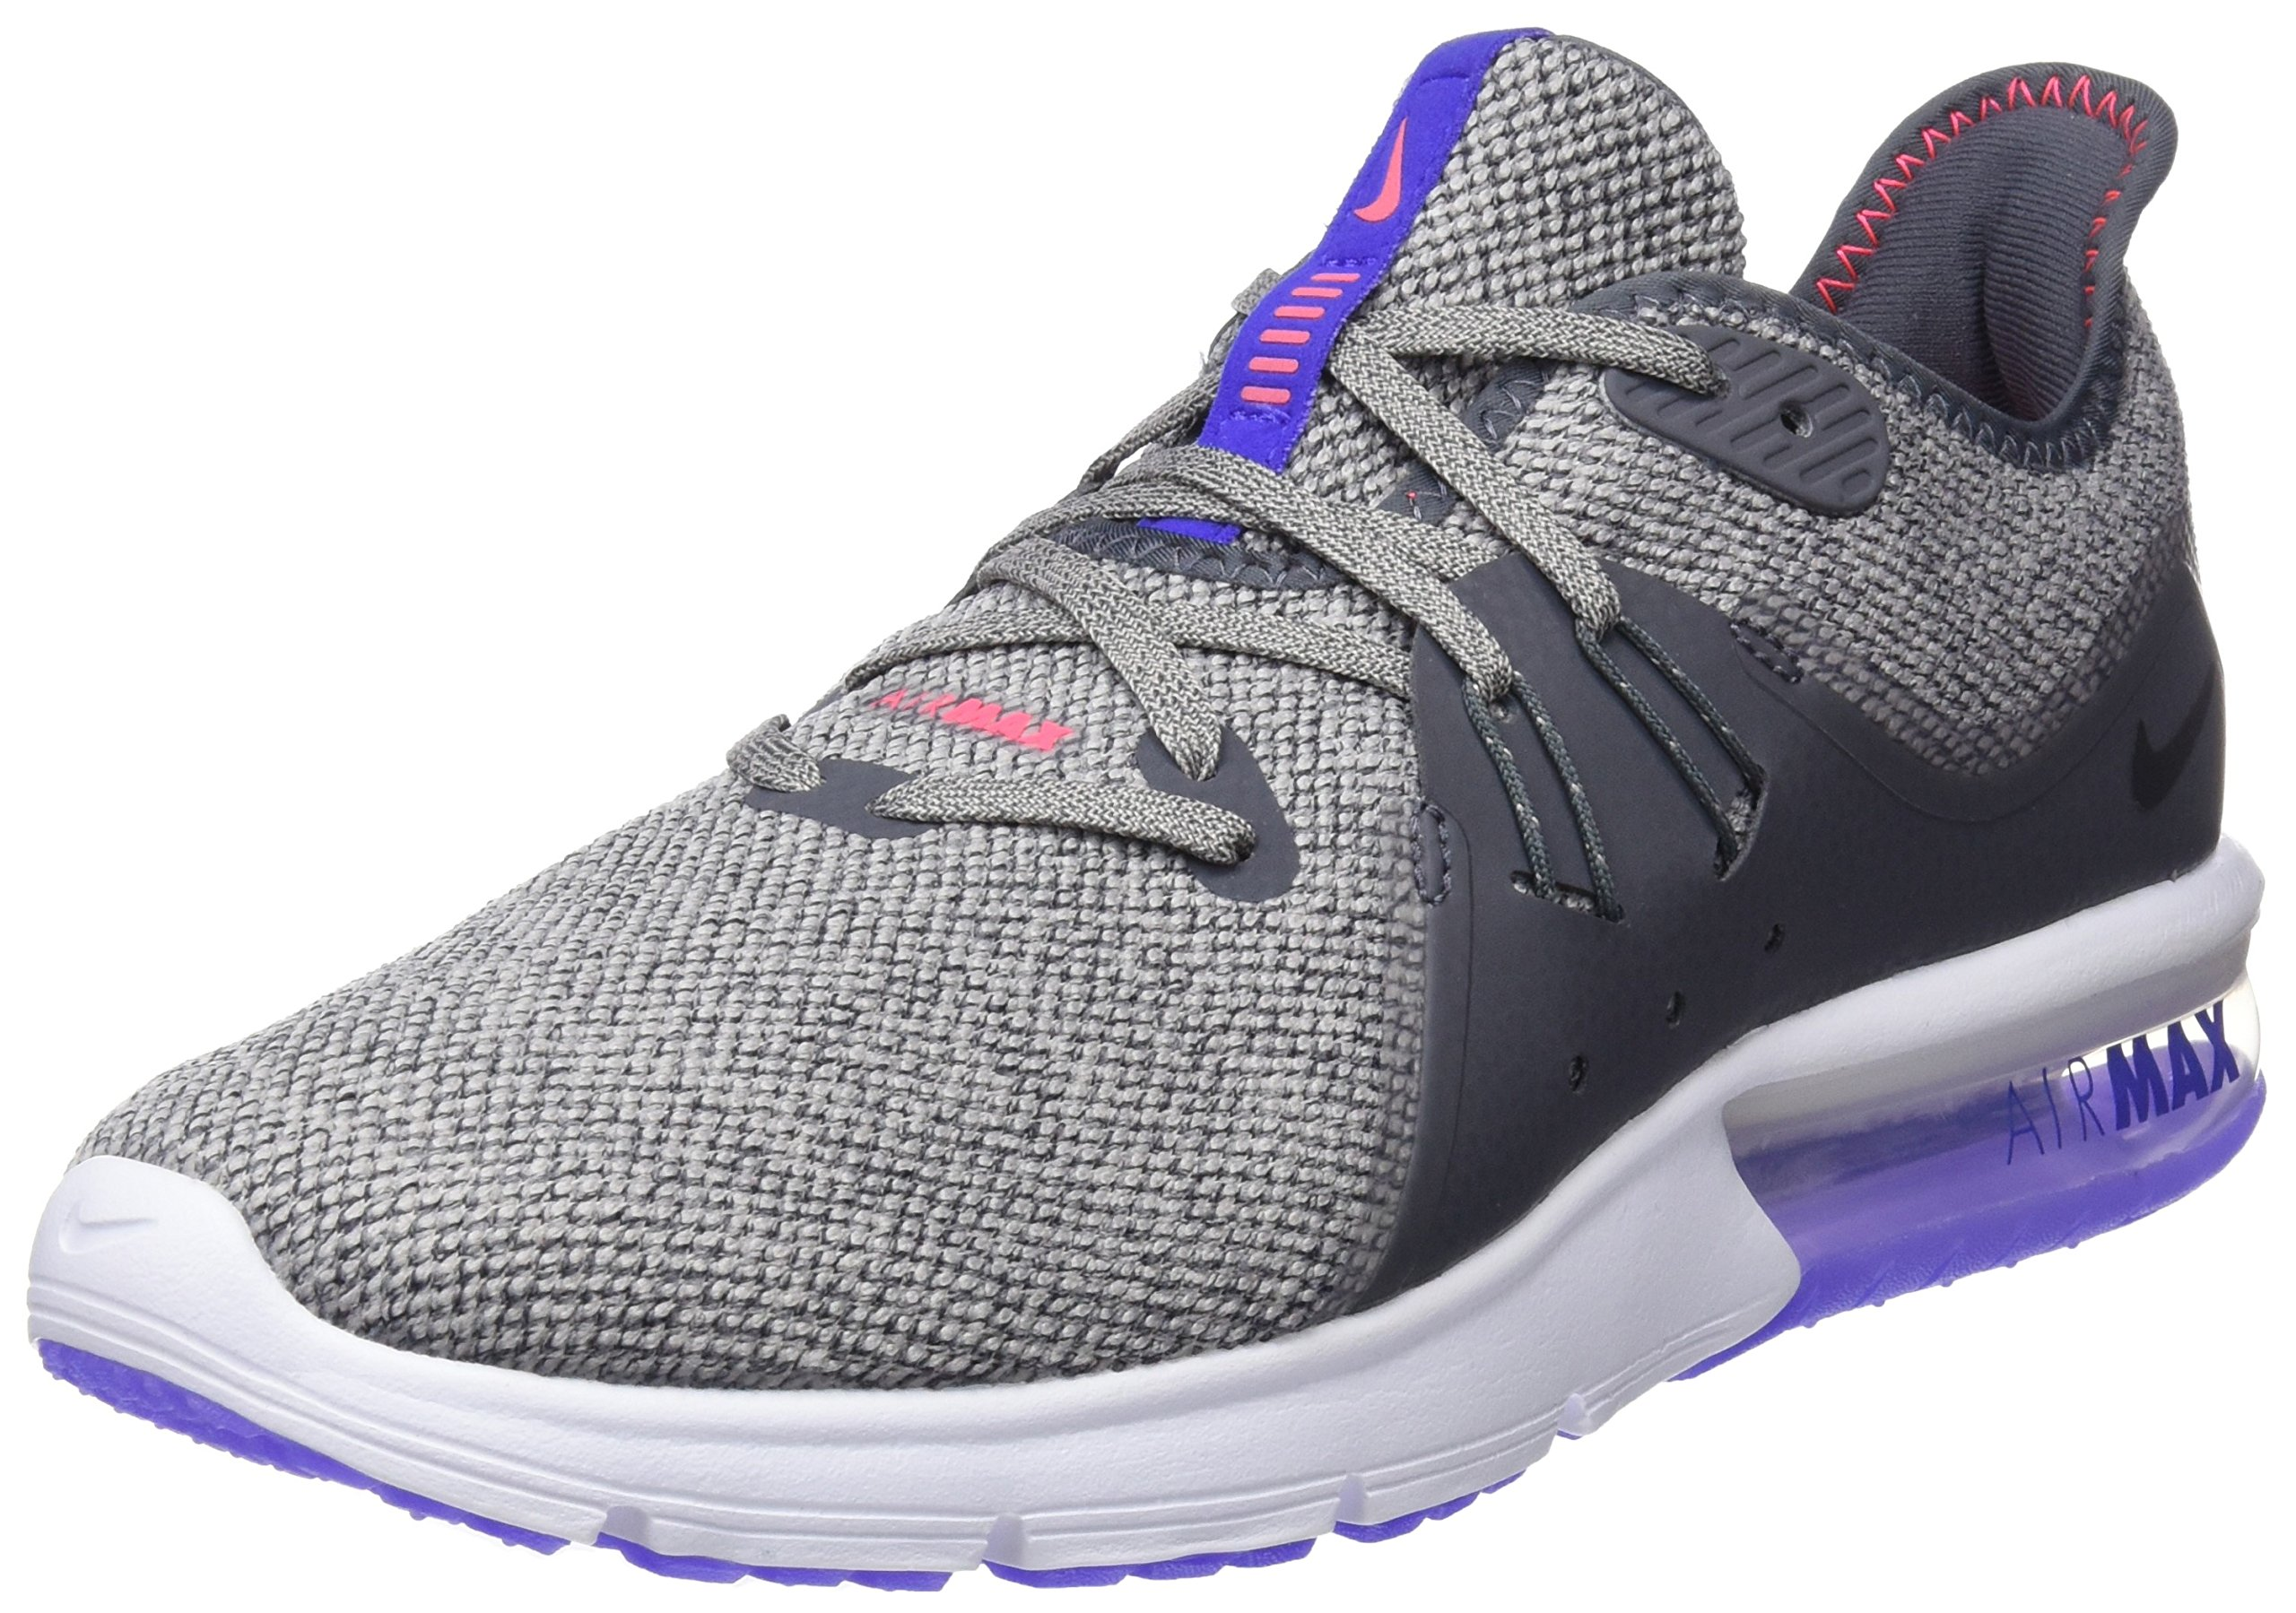 21ef1d08e34 Galleon - Nike Men s Air Max Sequent 3 Running Shoe (8.5